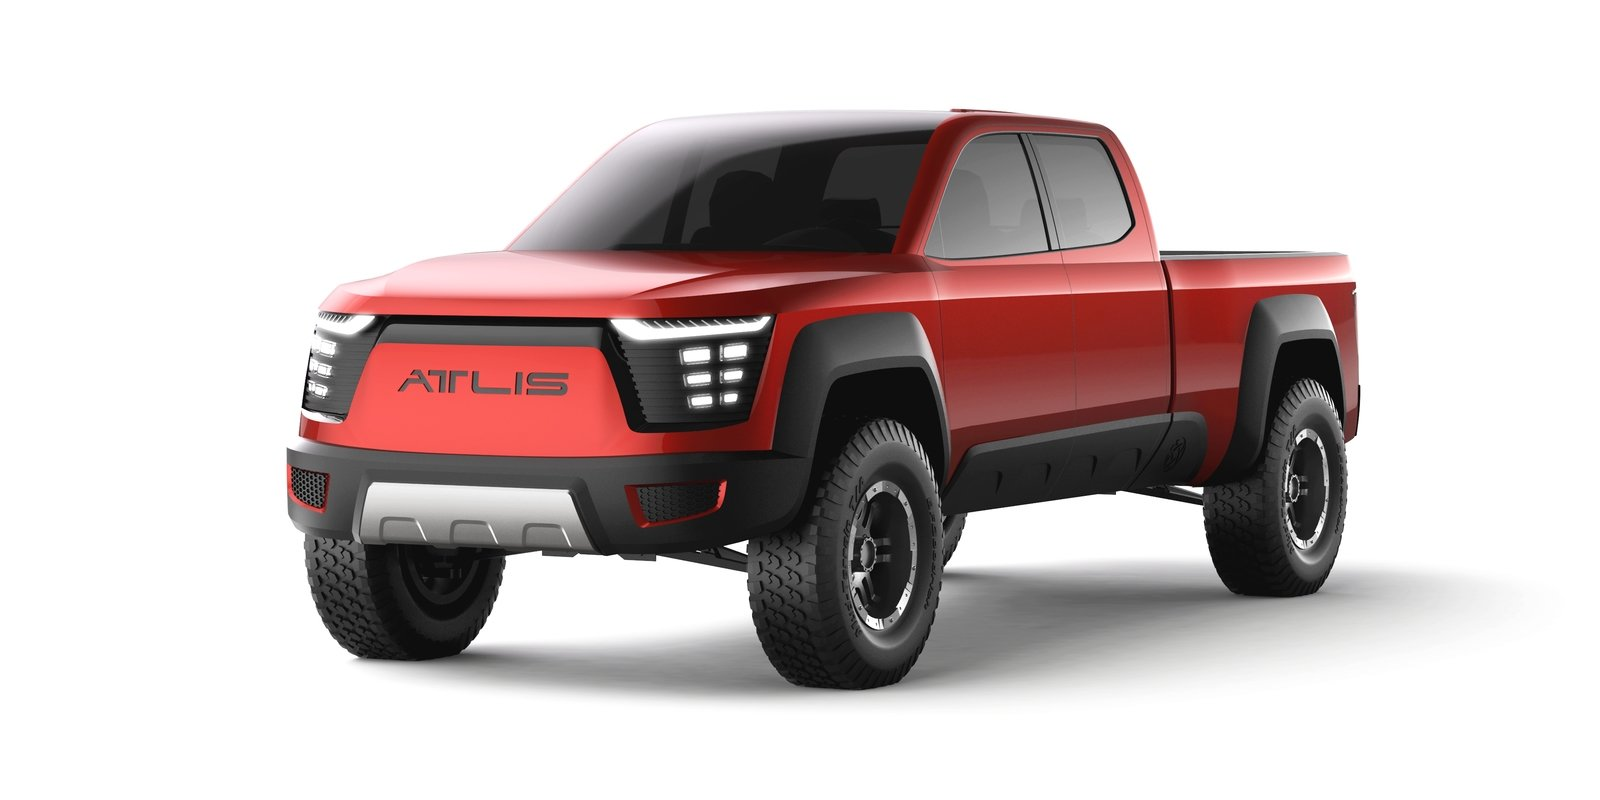 New Electric Pickup Truck From Atlis Motor Vehicles Will